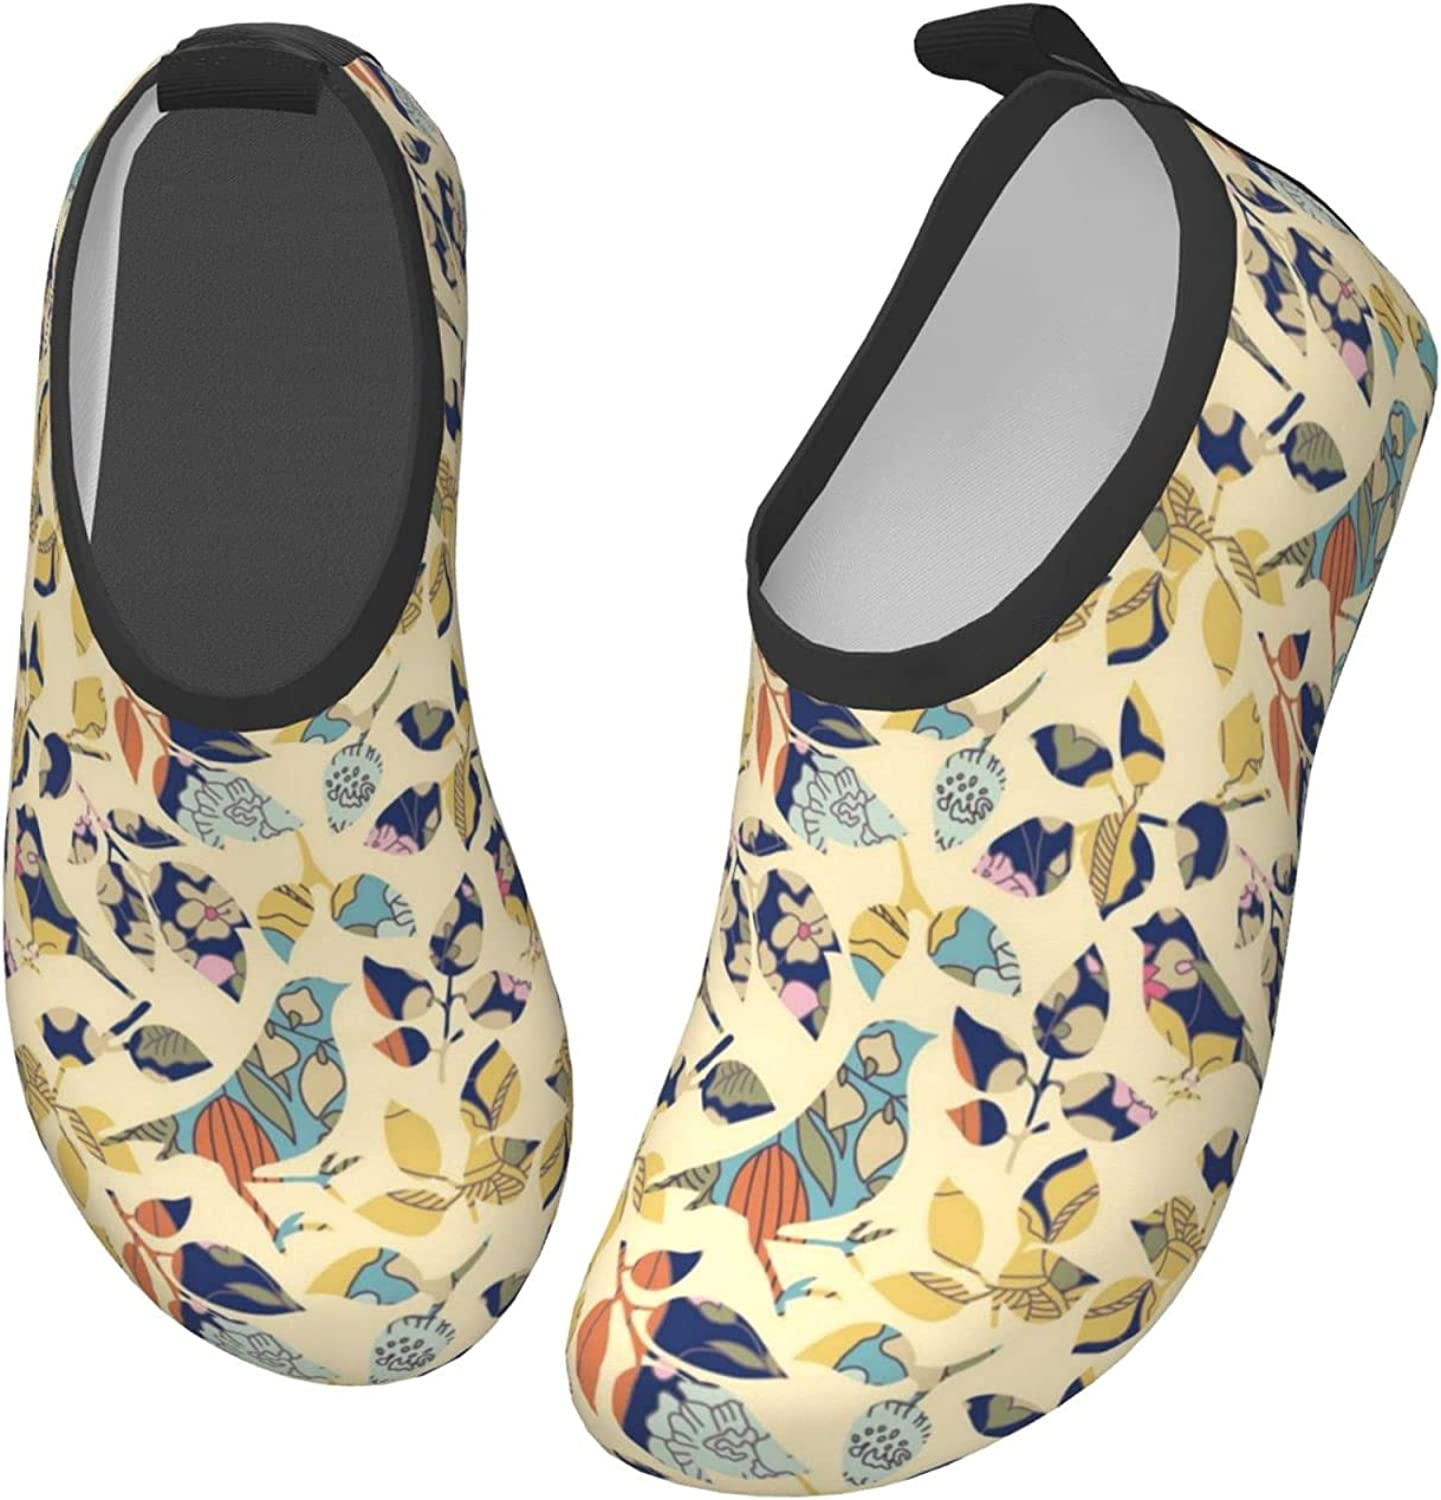 Fairy UMI Bird and Leaves Toddler Water Shoes Non-Slip Aqua Sports Shoes Barefoot Swim Shoes Beach Surf for Boys Girls